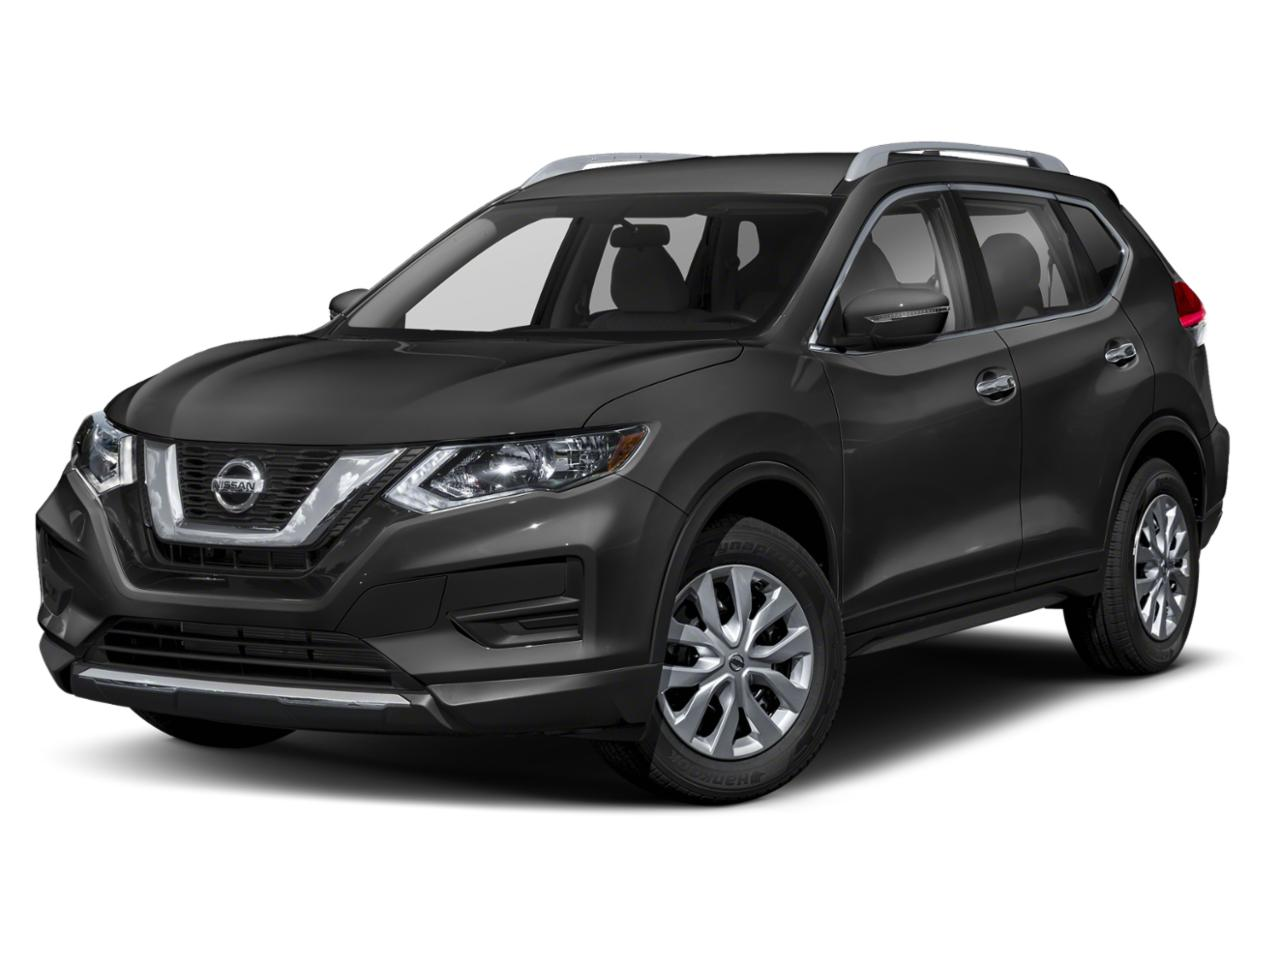 2019 Nissan Rogue Vehicle Photo in Broussard, LA 70518